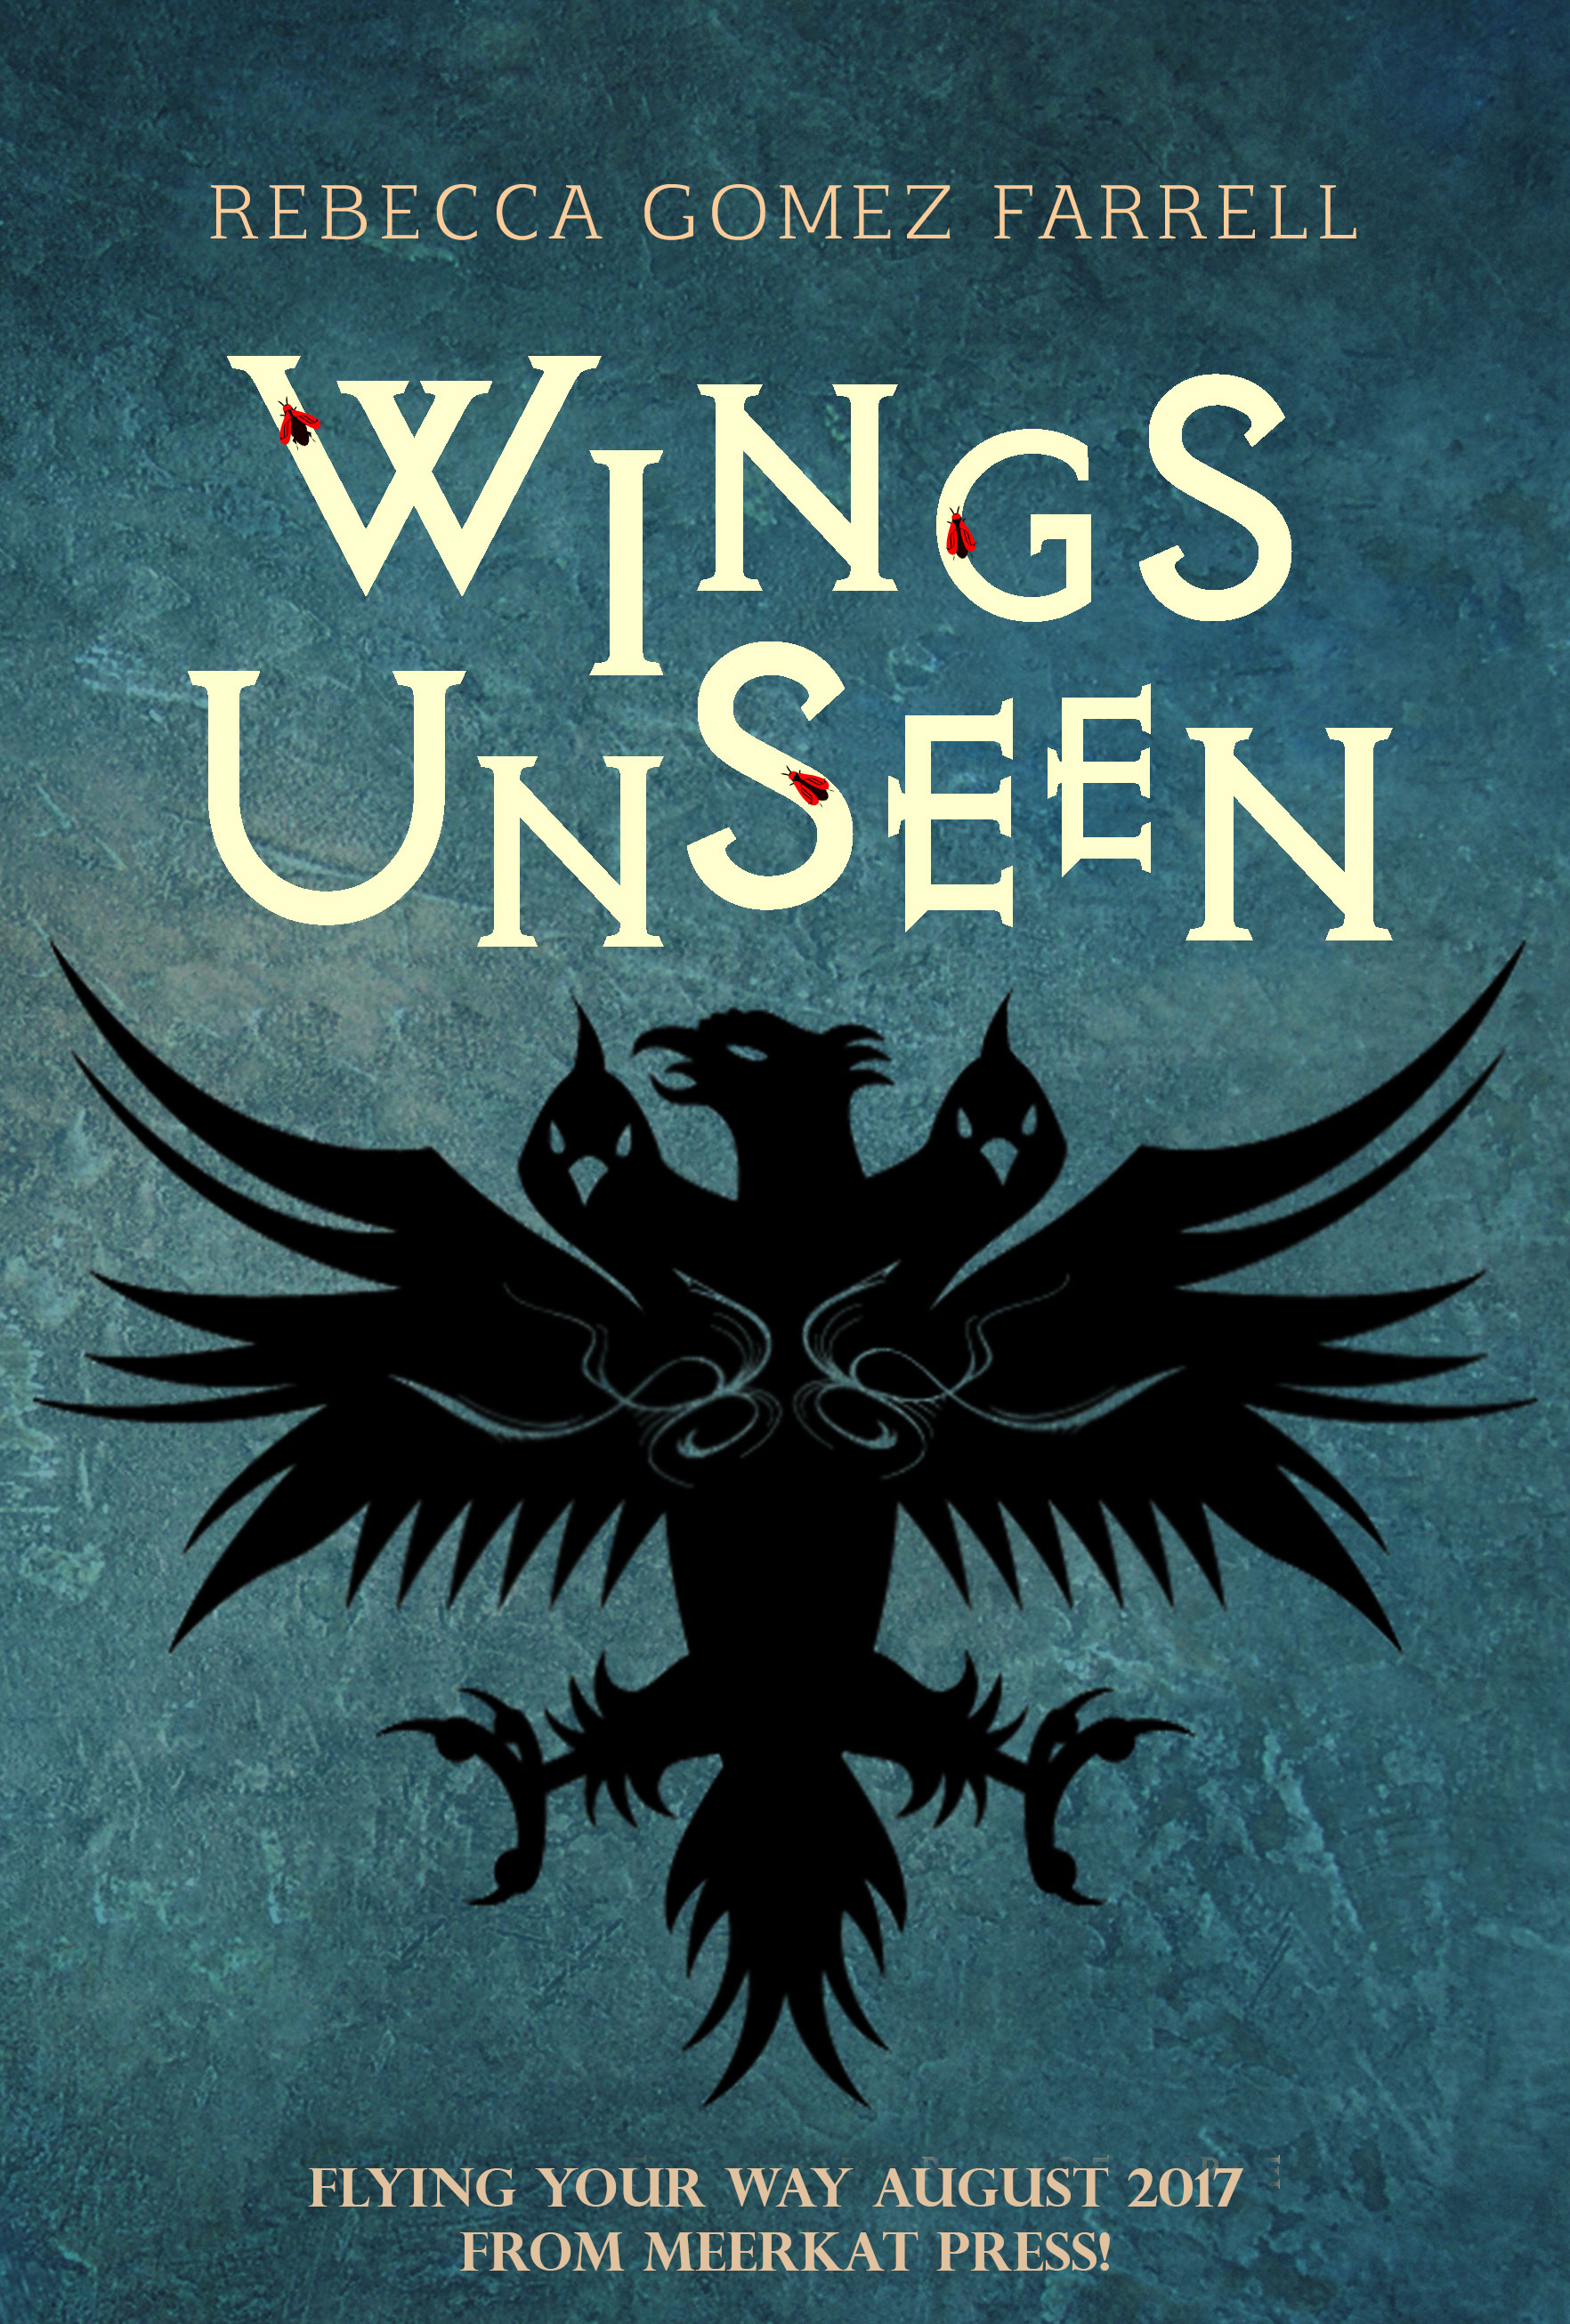 Order an Autographed Gift of Wings Unseen by 12/16!